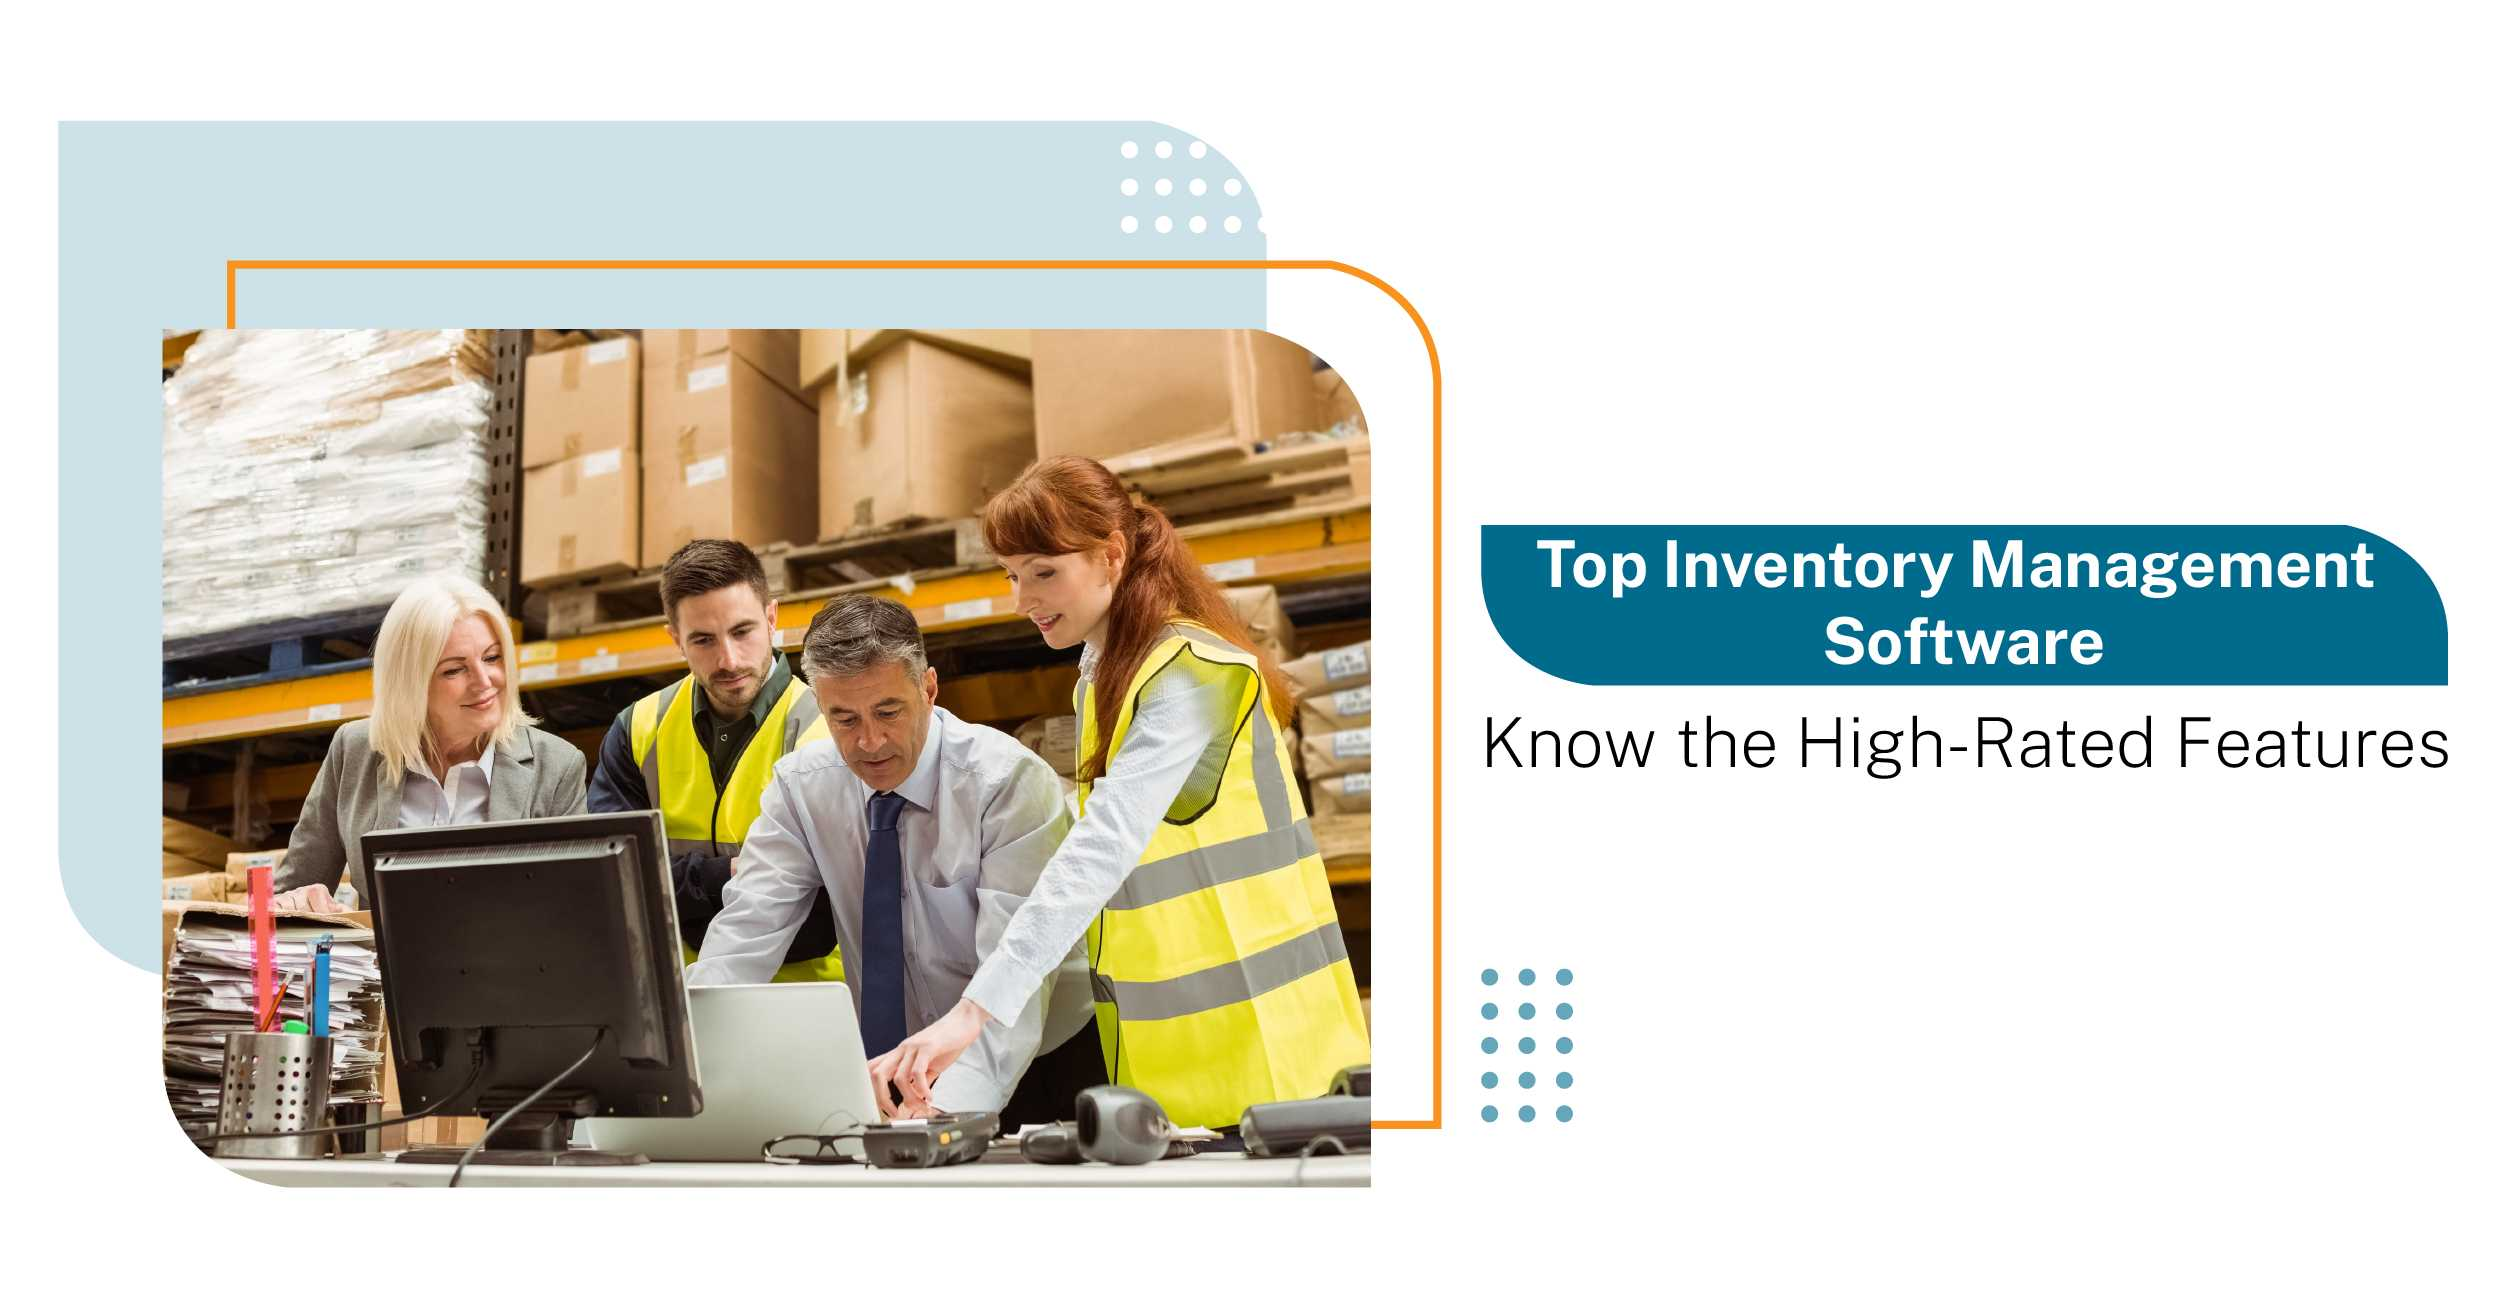 Top Inventory Management Software   Know the High-Rated Features